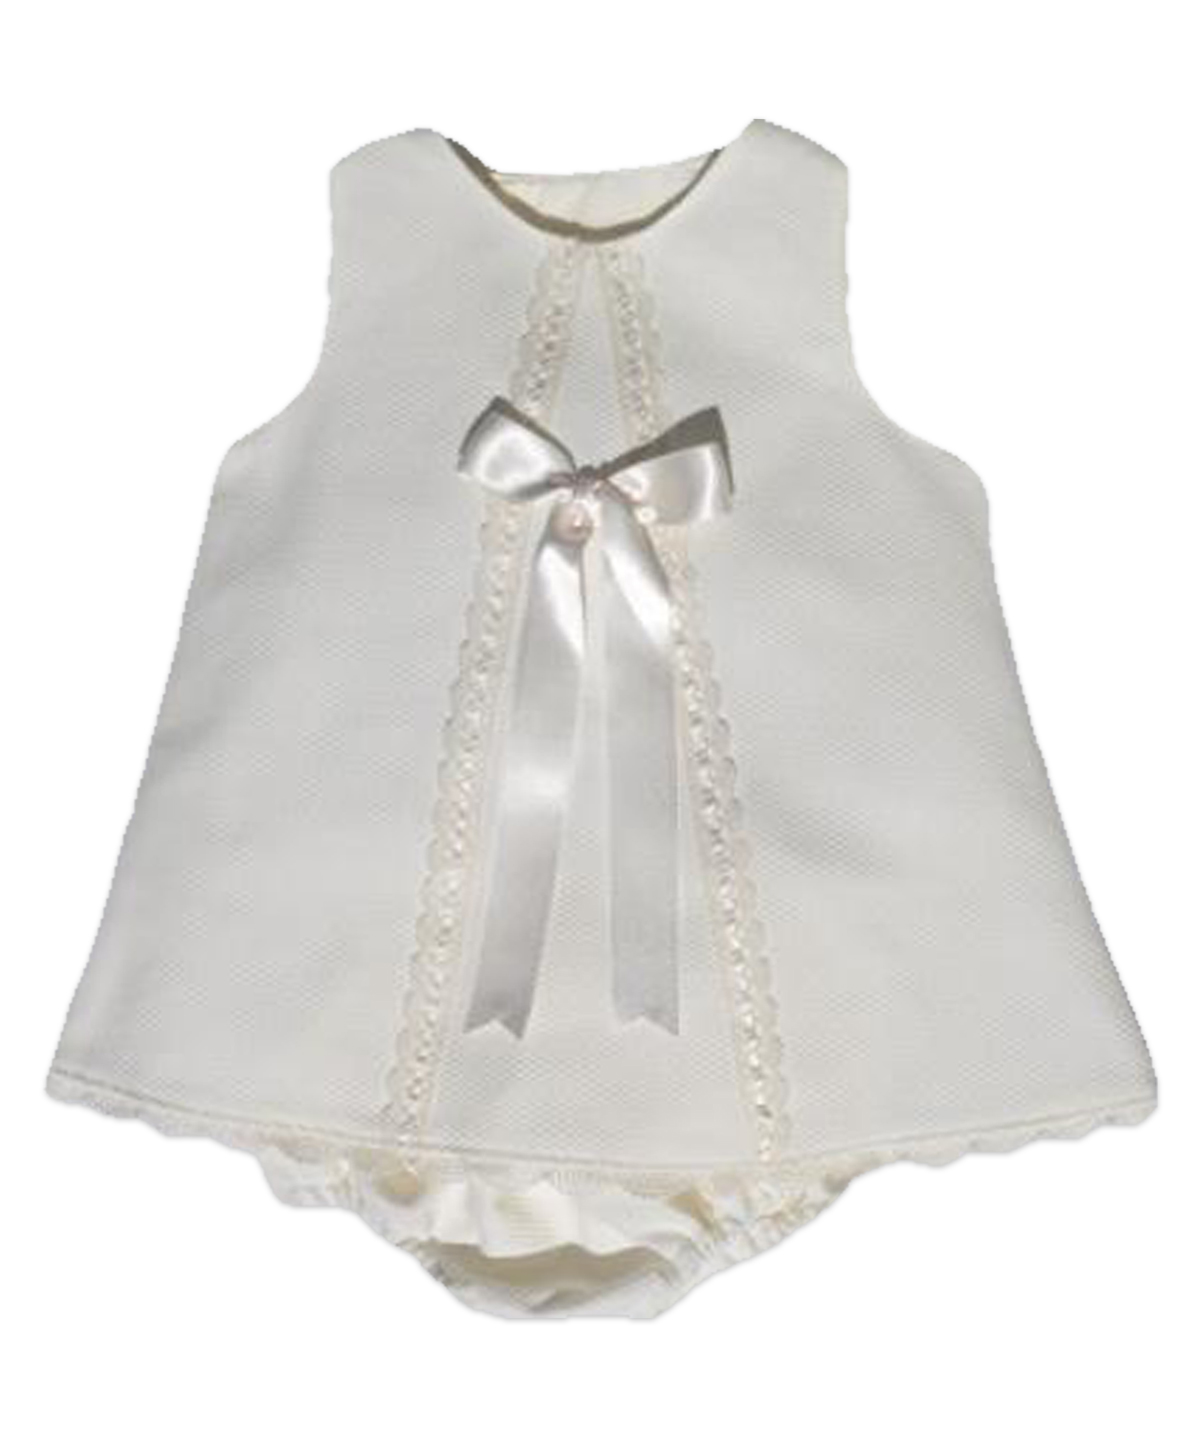 Buy Baby Clothes London